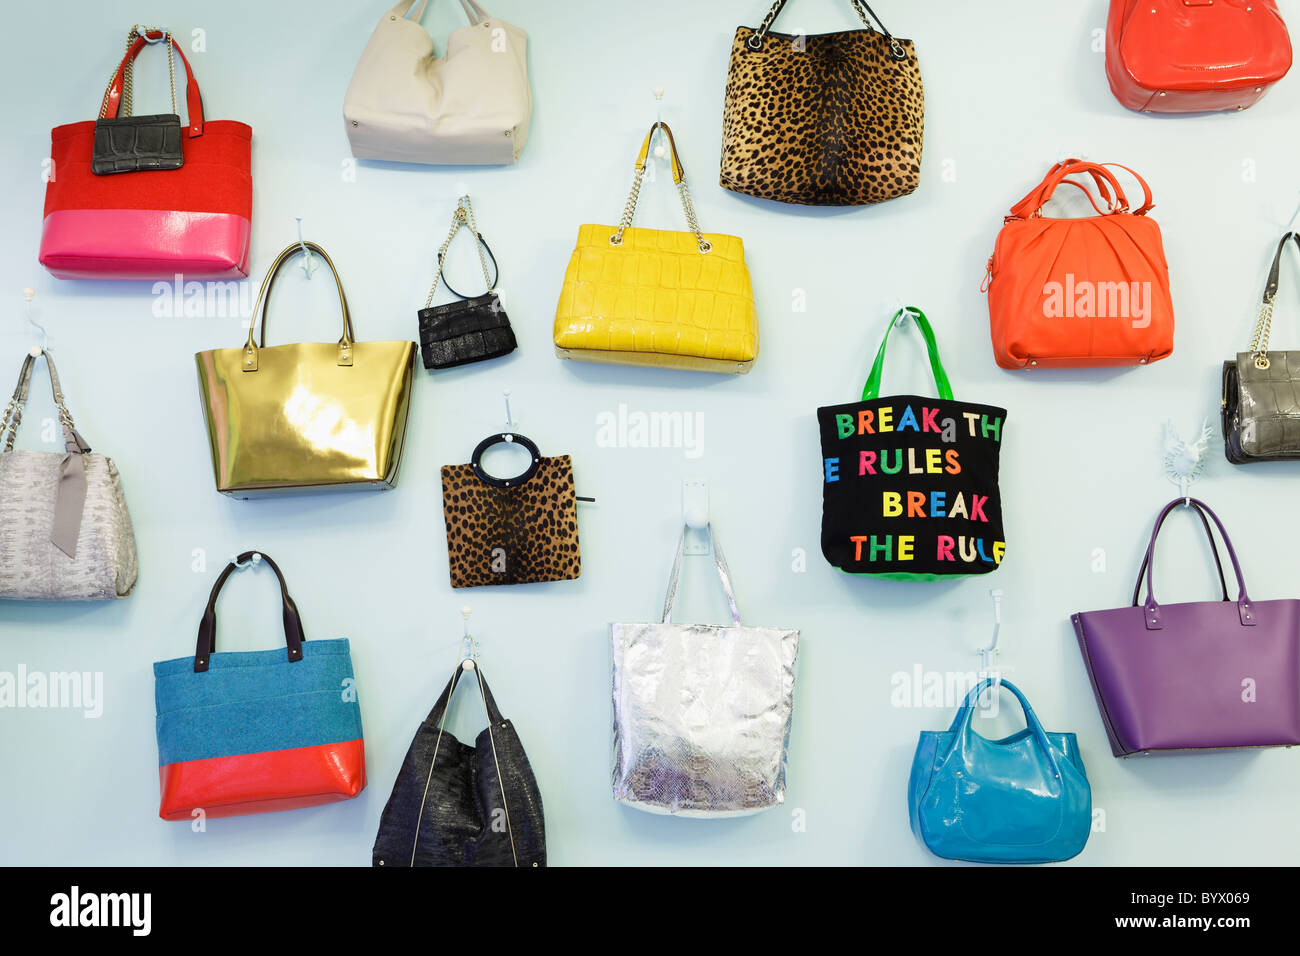 A wall of handbags at the Kate Spade pop-up store in Covent Garden, London, England Stock Photo